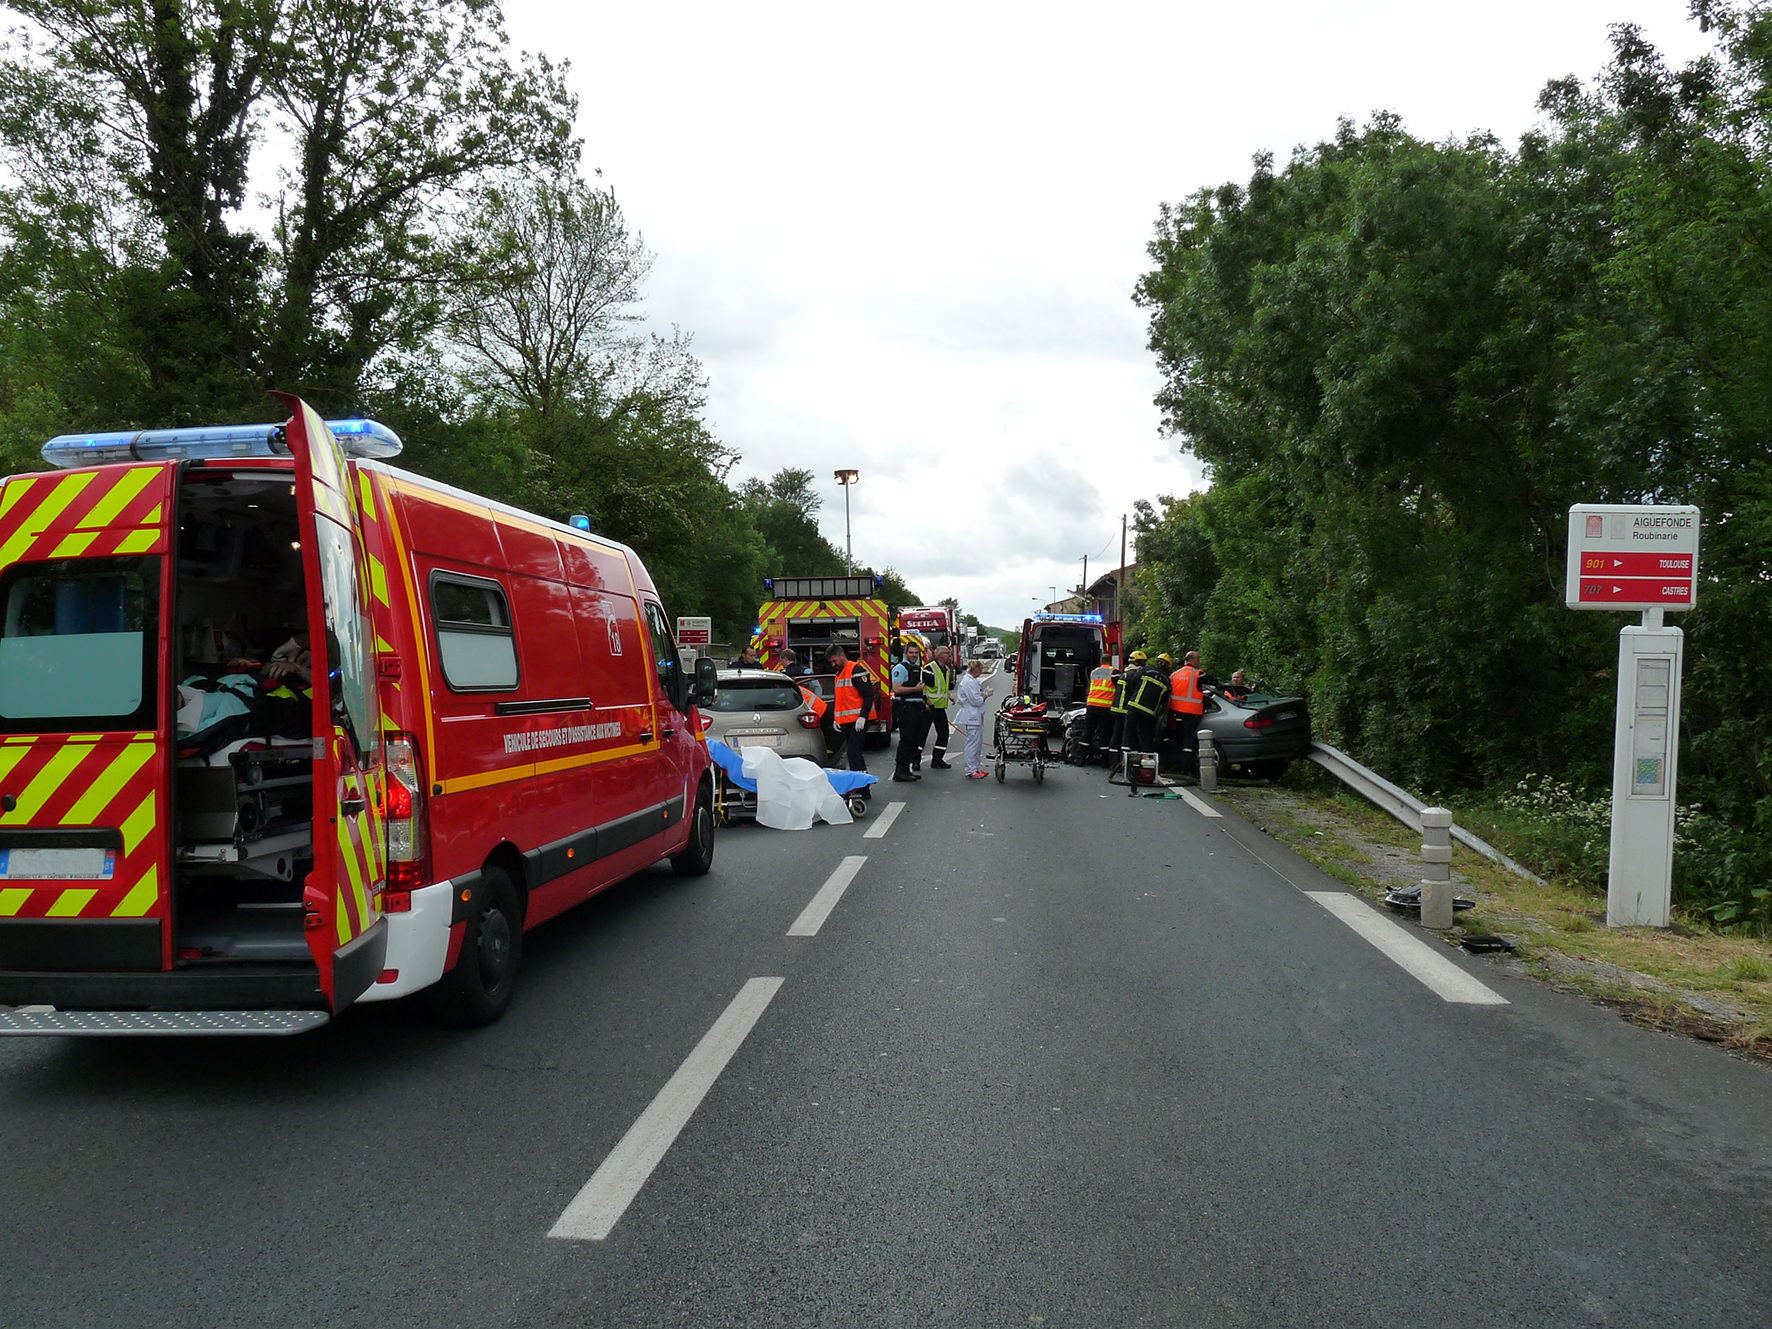 Accident de la circulation sur la commune de Aiguefonde